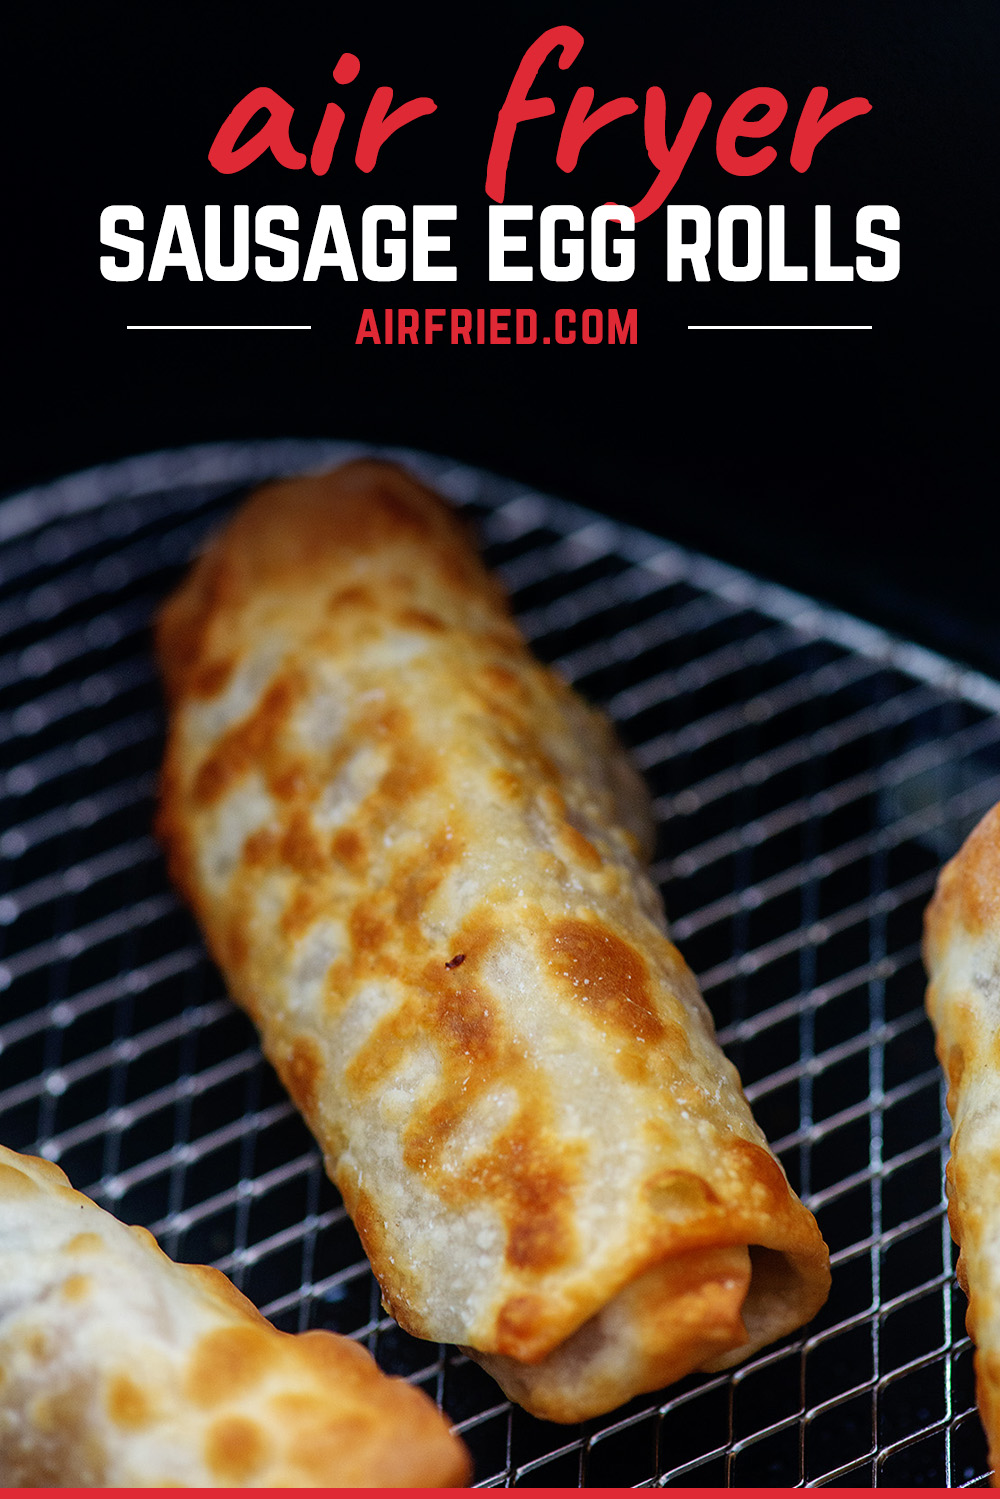 Crispy sausage egg rolls are very easy to make in the air fryer. #airfried #recipes #homemade